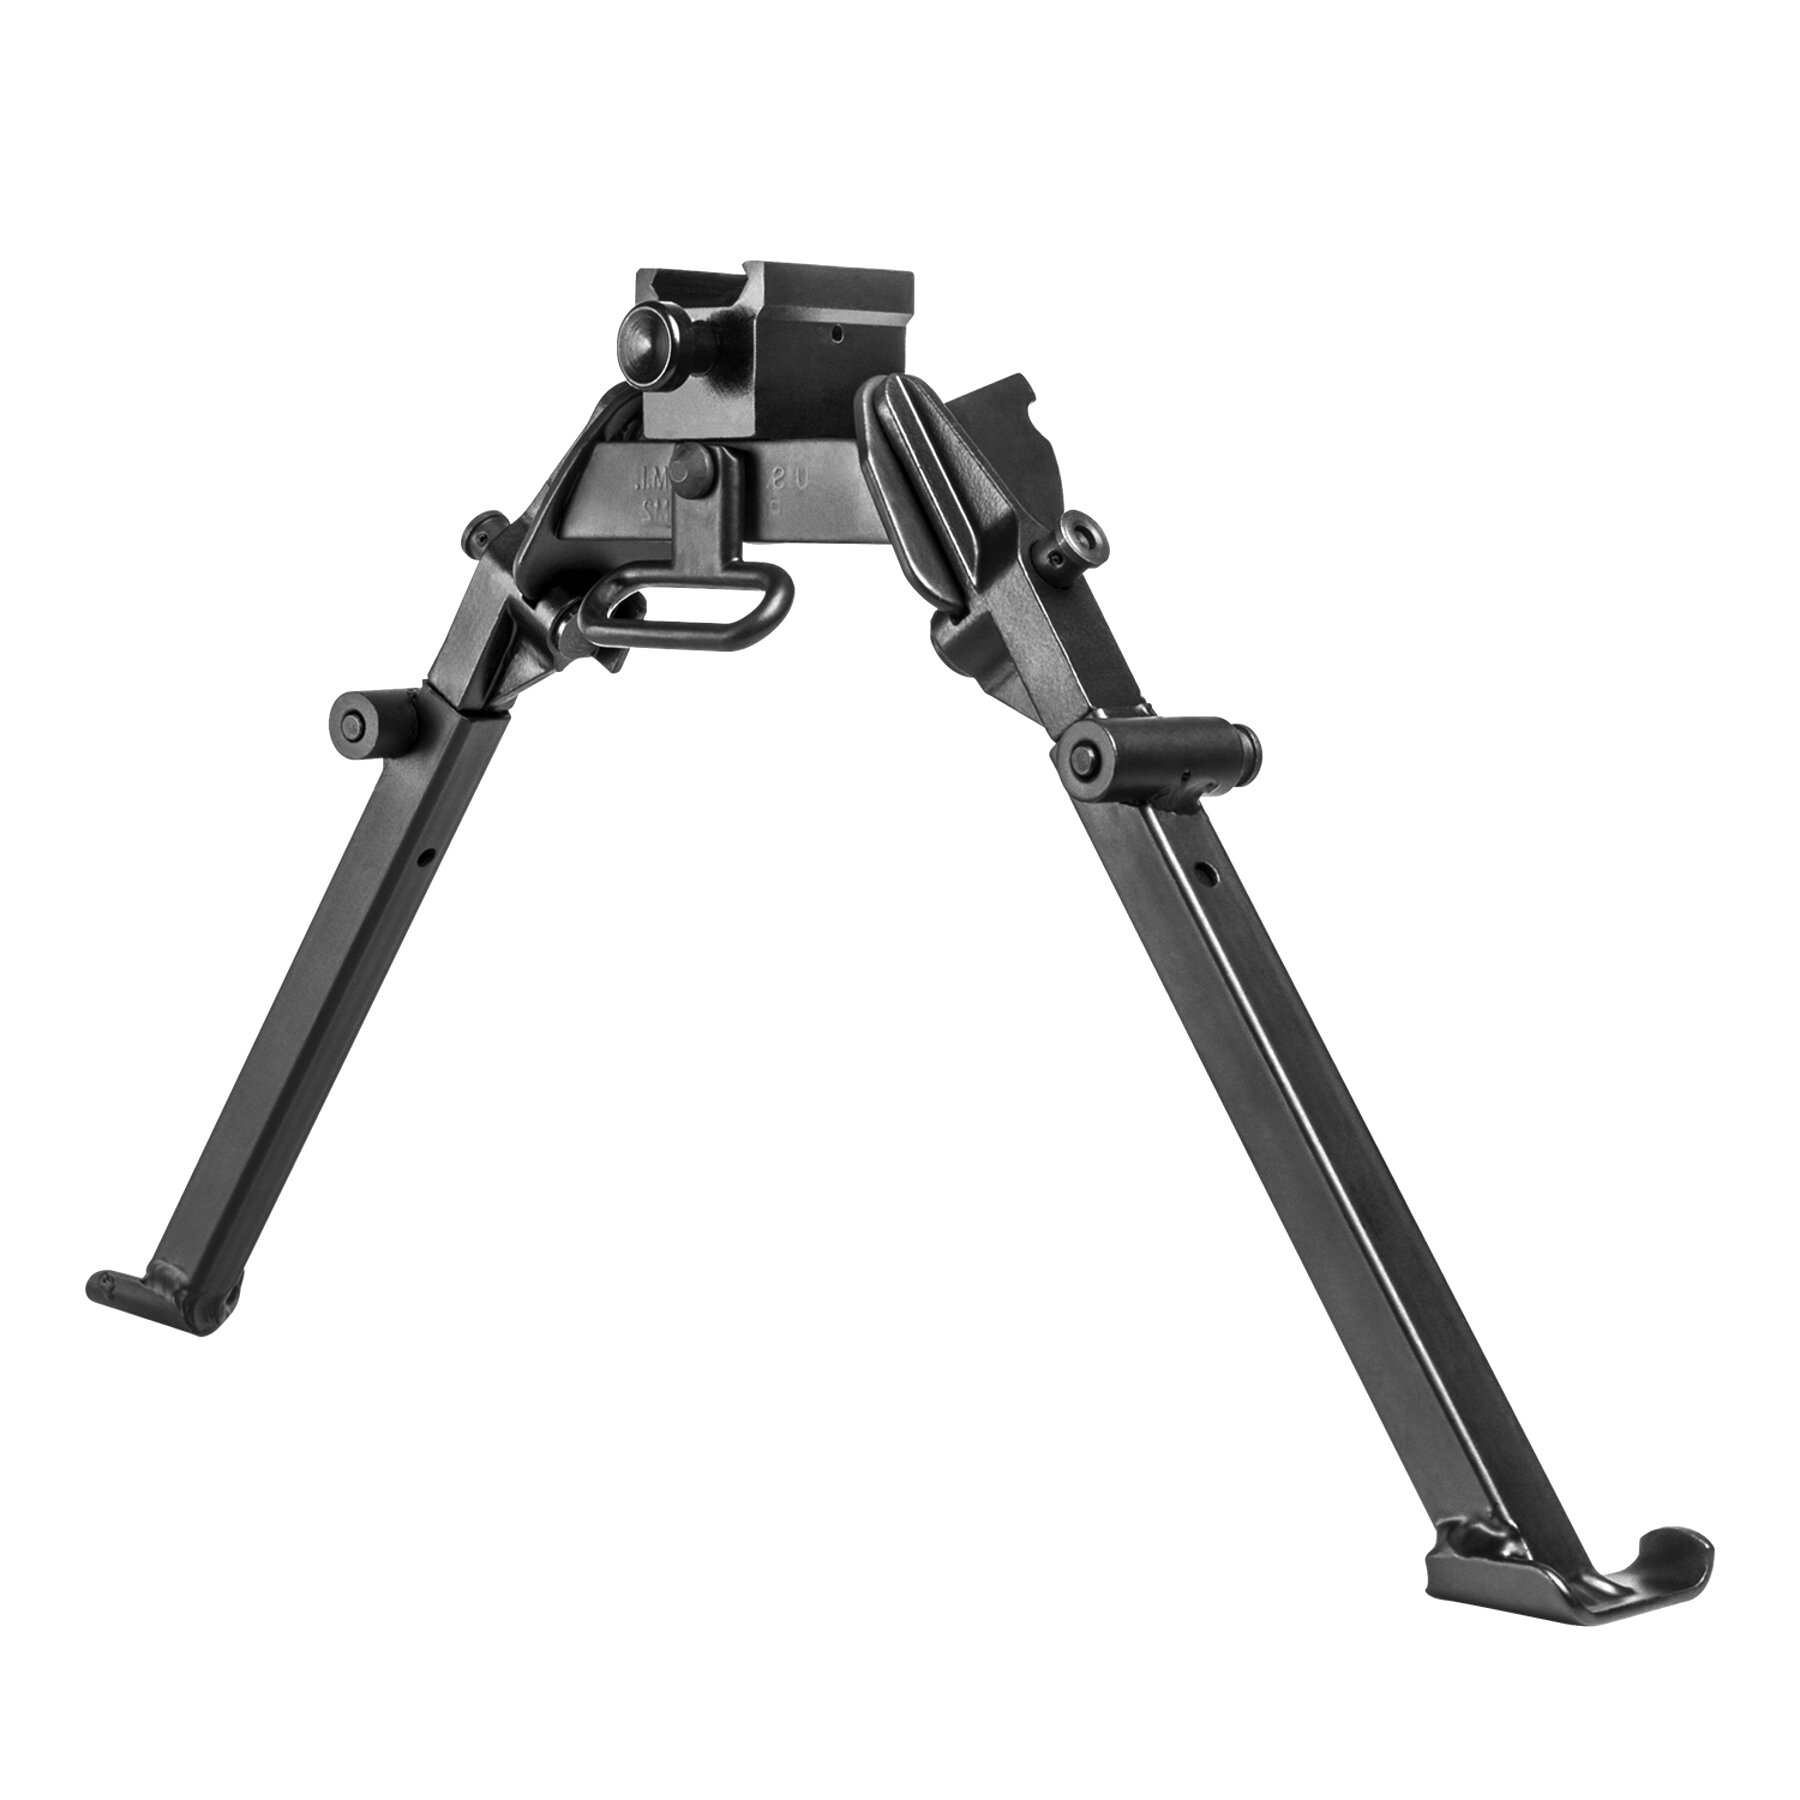 m14 bipod for sale